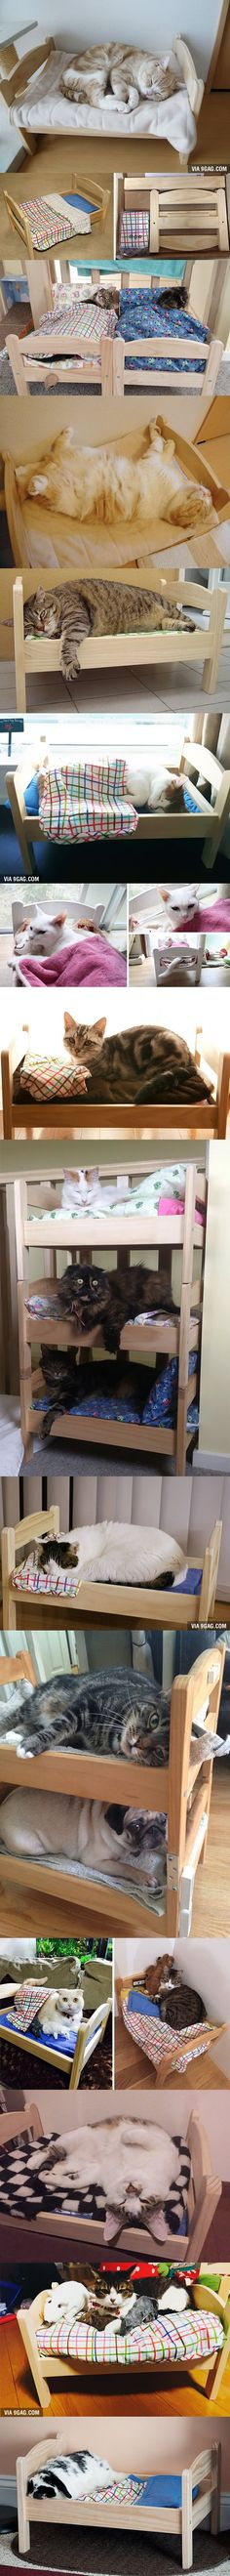 Some clever Japanese cat owners have re-purposed a simple but popular doll bed from IKEA, turning it into an adorable bed for their cats and other pets. Not for dogs but I like it Ikea Doll Bed, Doll Beds, Ikea Bed, Pet Furniture, Furniture Market, Furniture Ideas, Chat Kawaii, Japanese Cat, Ideal Toys